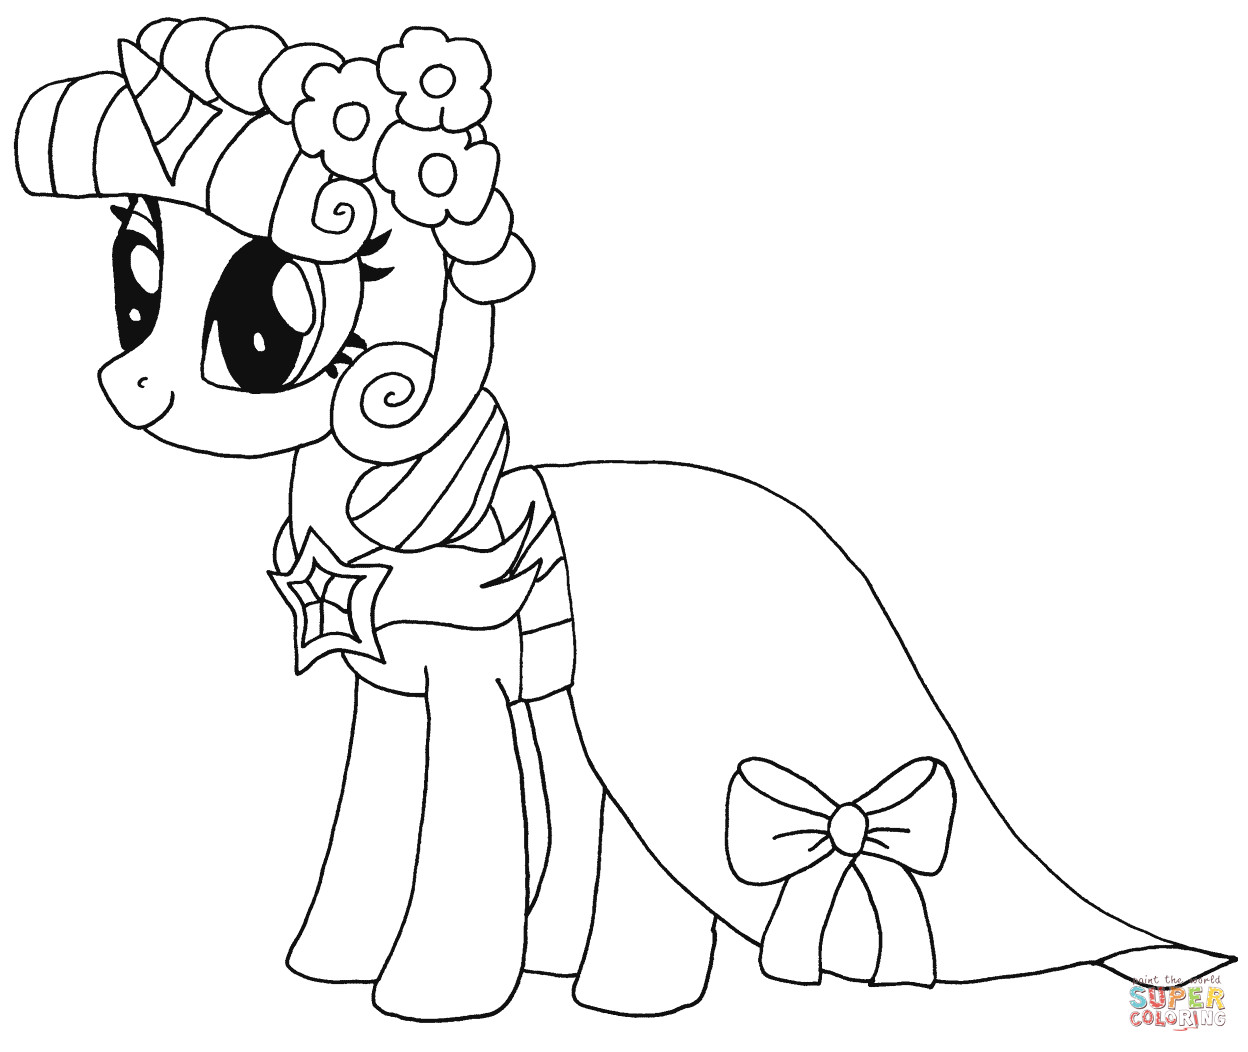 Twilight Coloring Sheets For Girls  Princess Twilight Sparkle coloring page